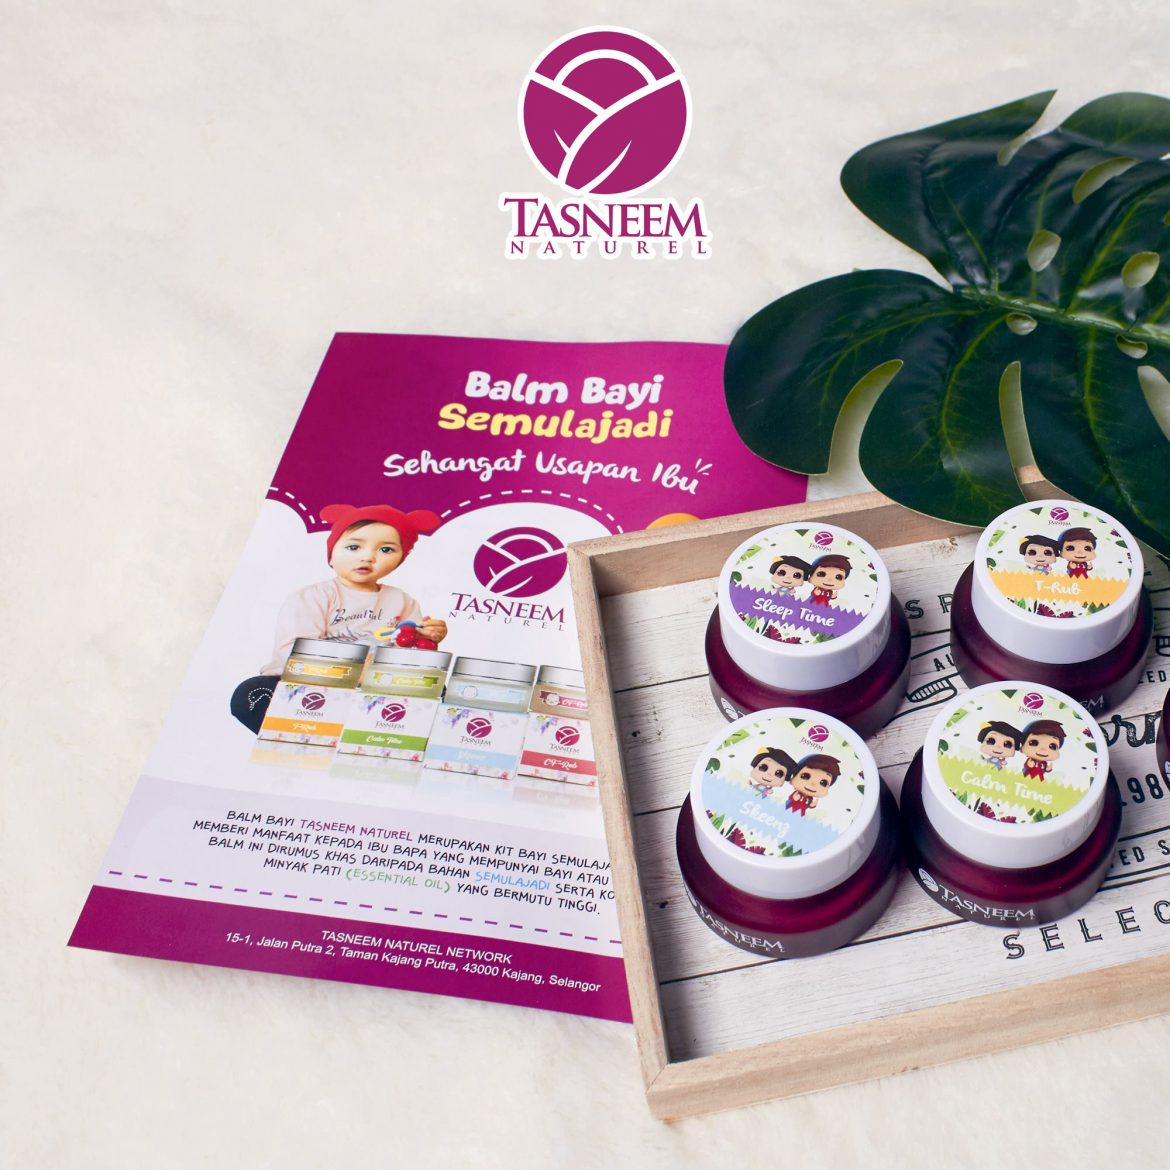 Balm Tasneem Naturel